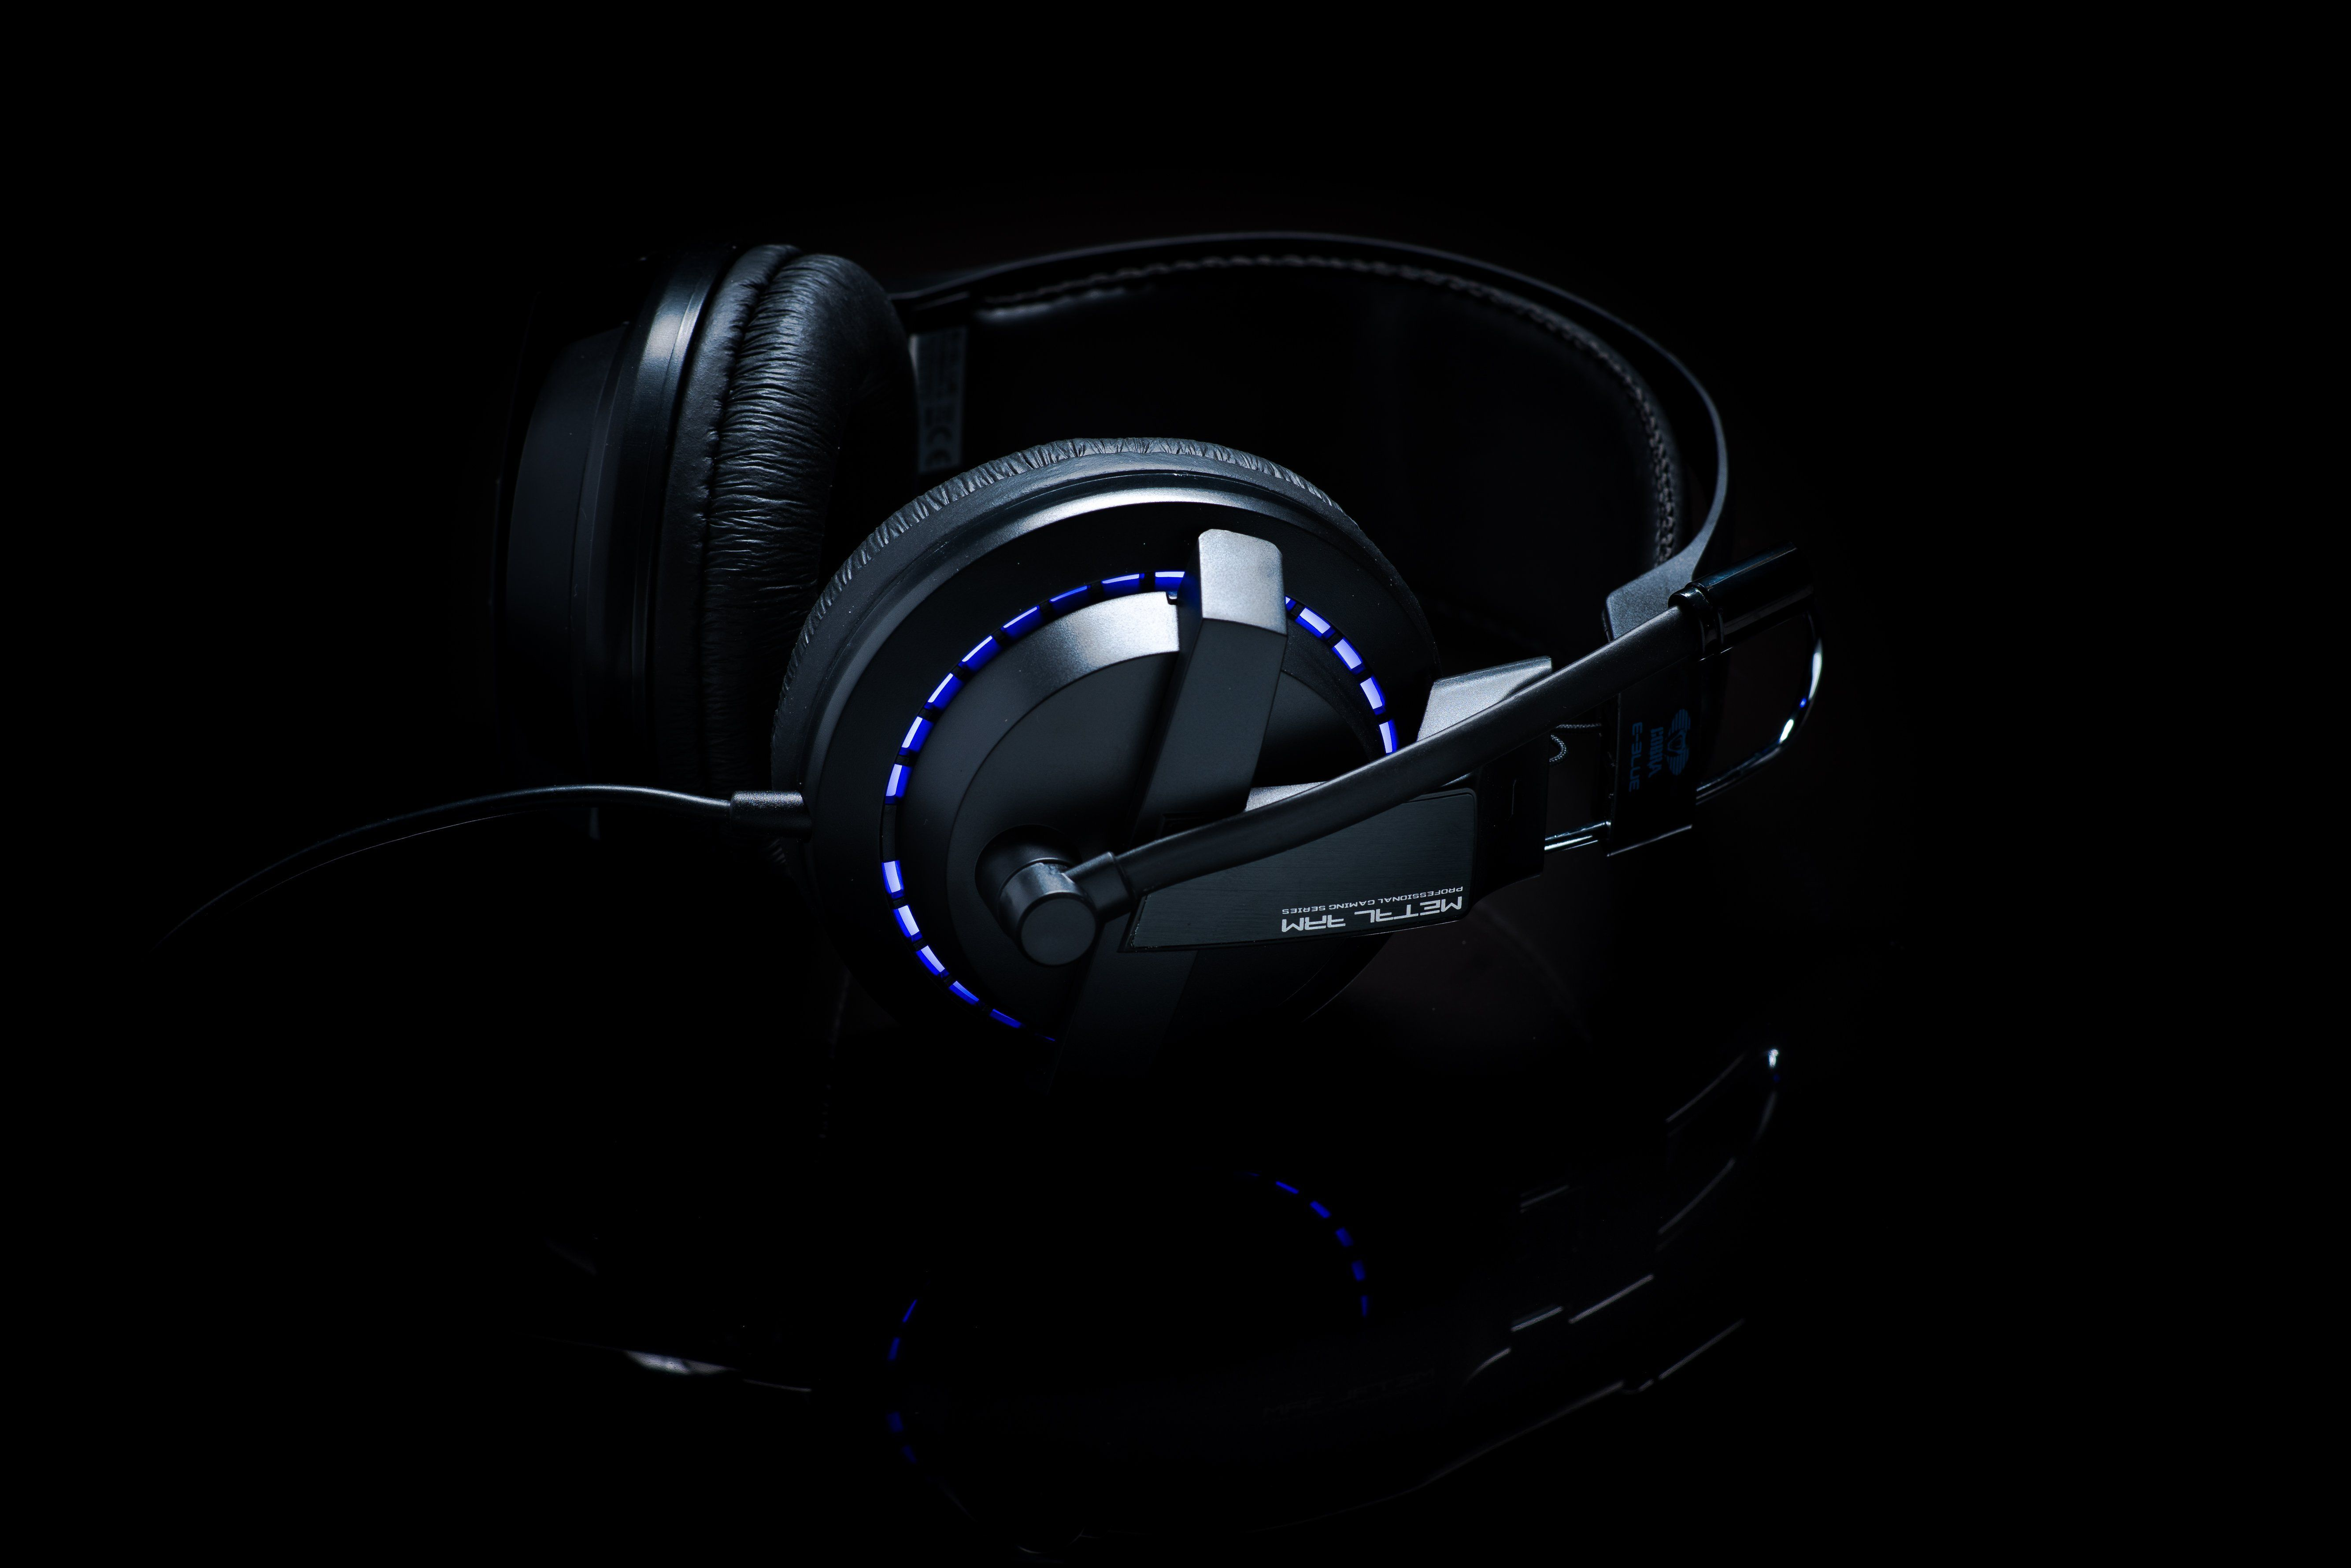 2fada51bc60 Cobra-x advance lighting gaming headset | Products | Gaming headset ...